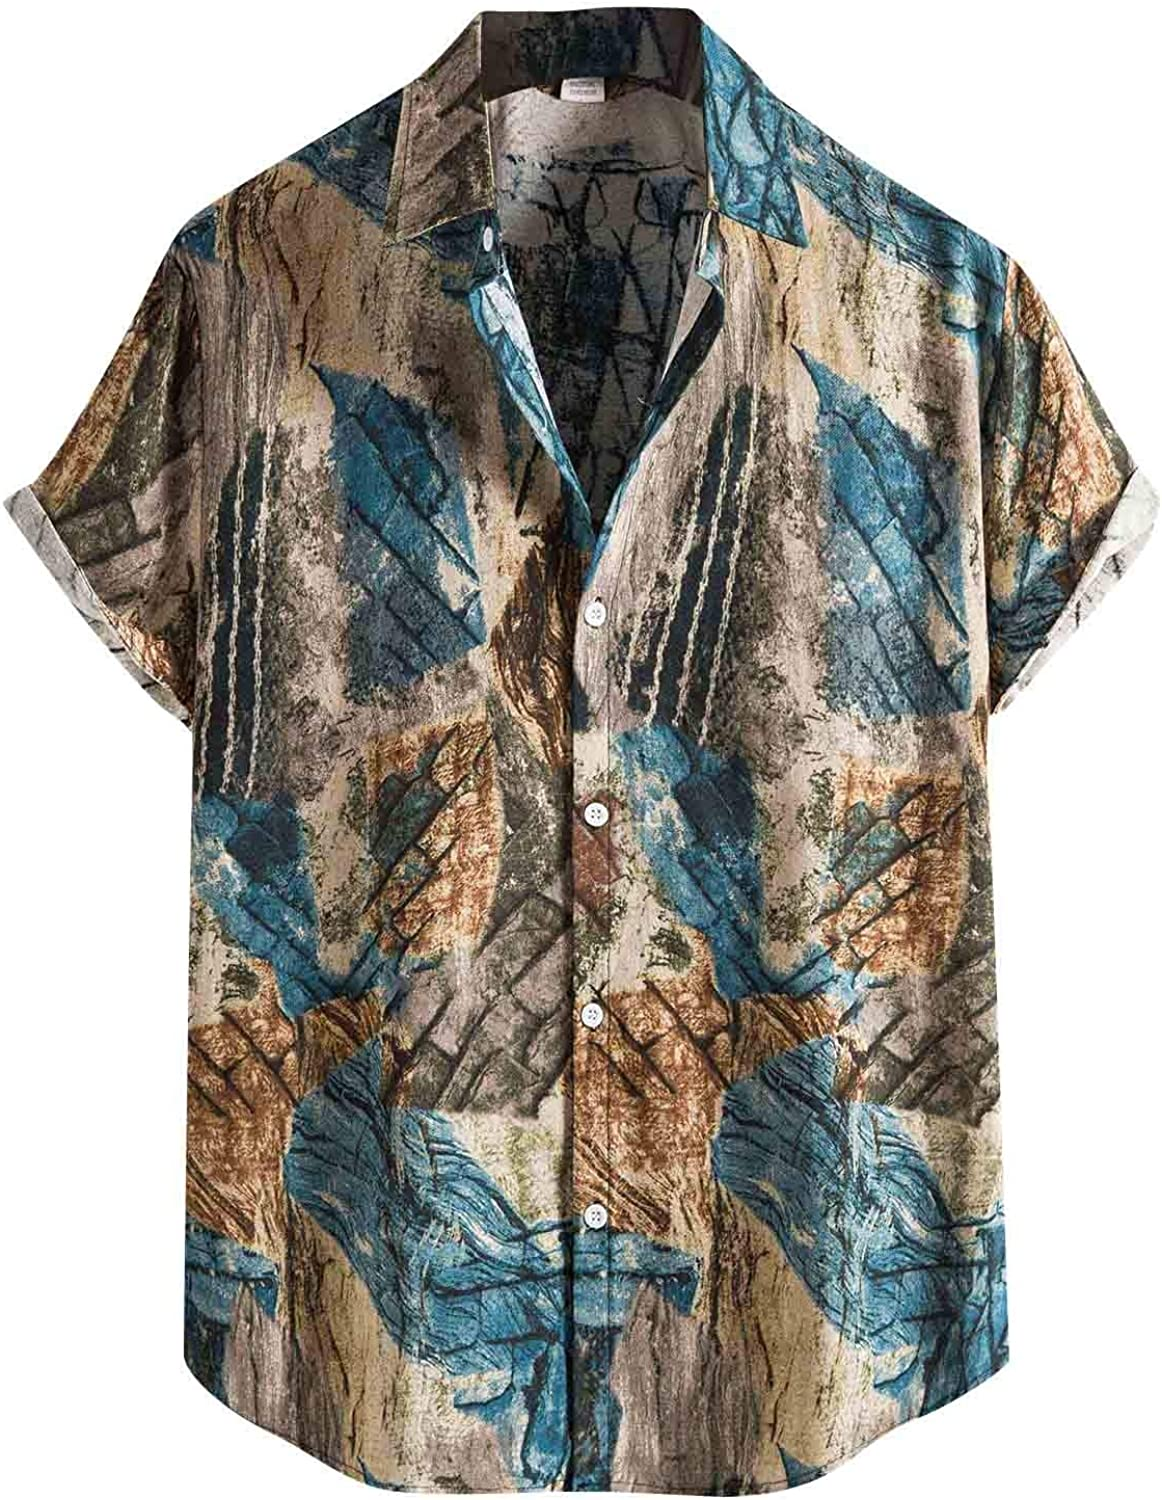 Appoi Funky Casual Hawaiian Shirt for Men Regular Fit Short Sleeve Colors Print Summer Beach Shirts for Holiday